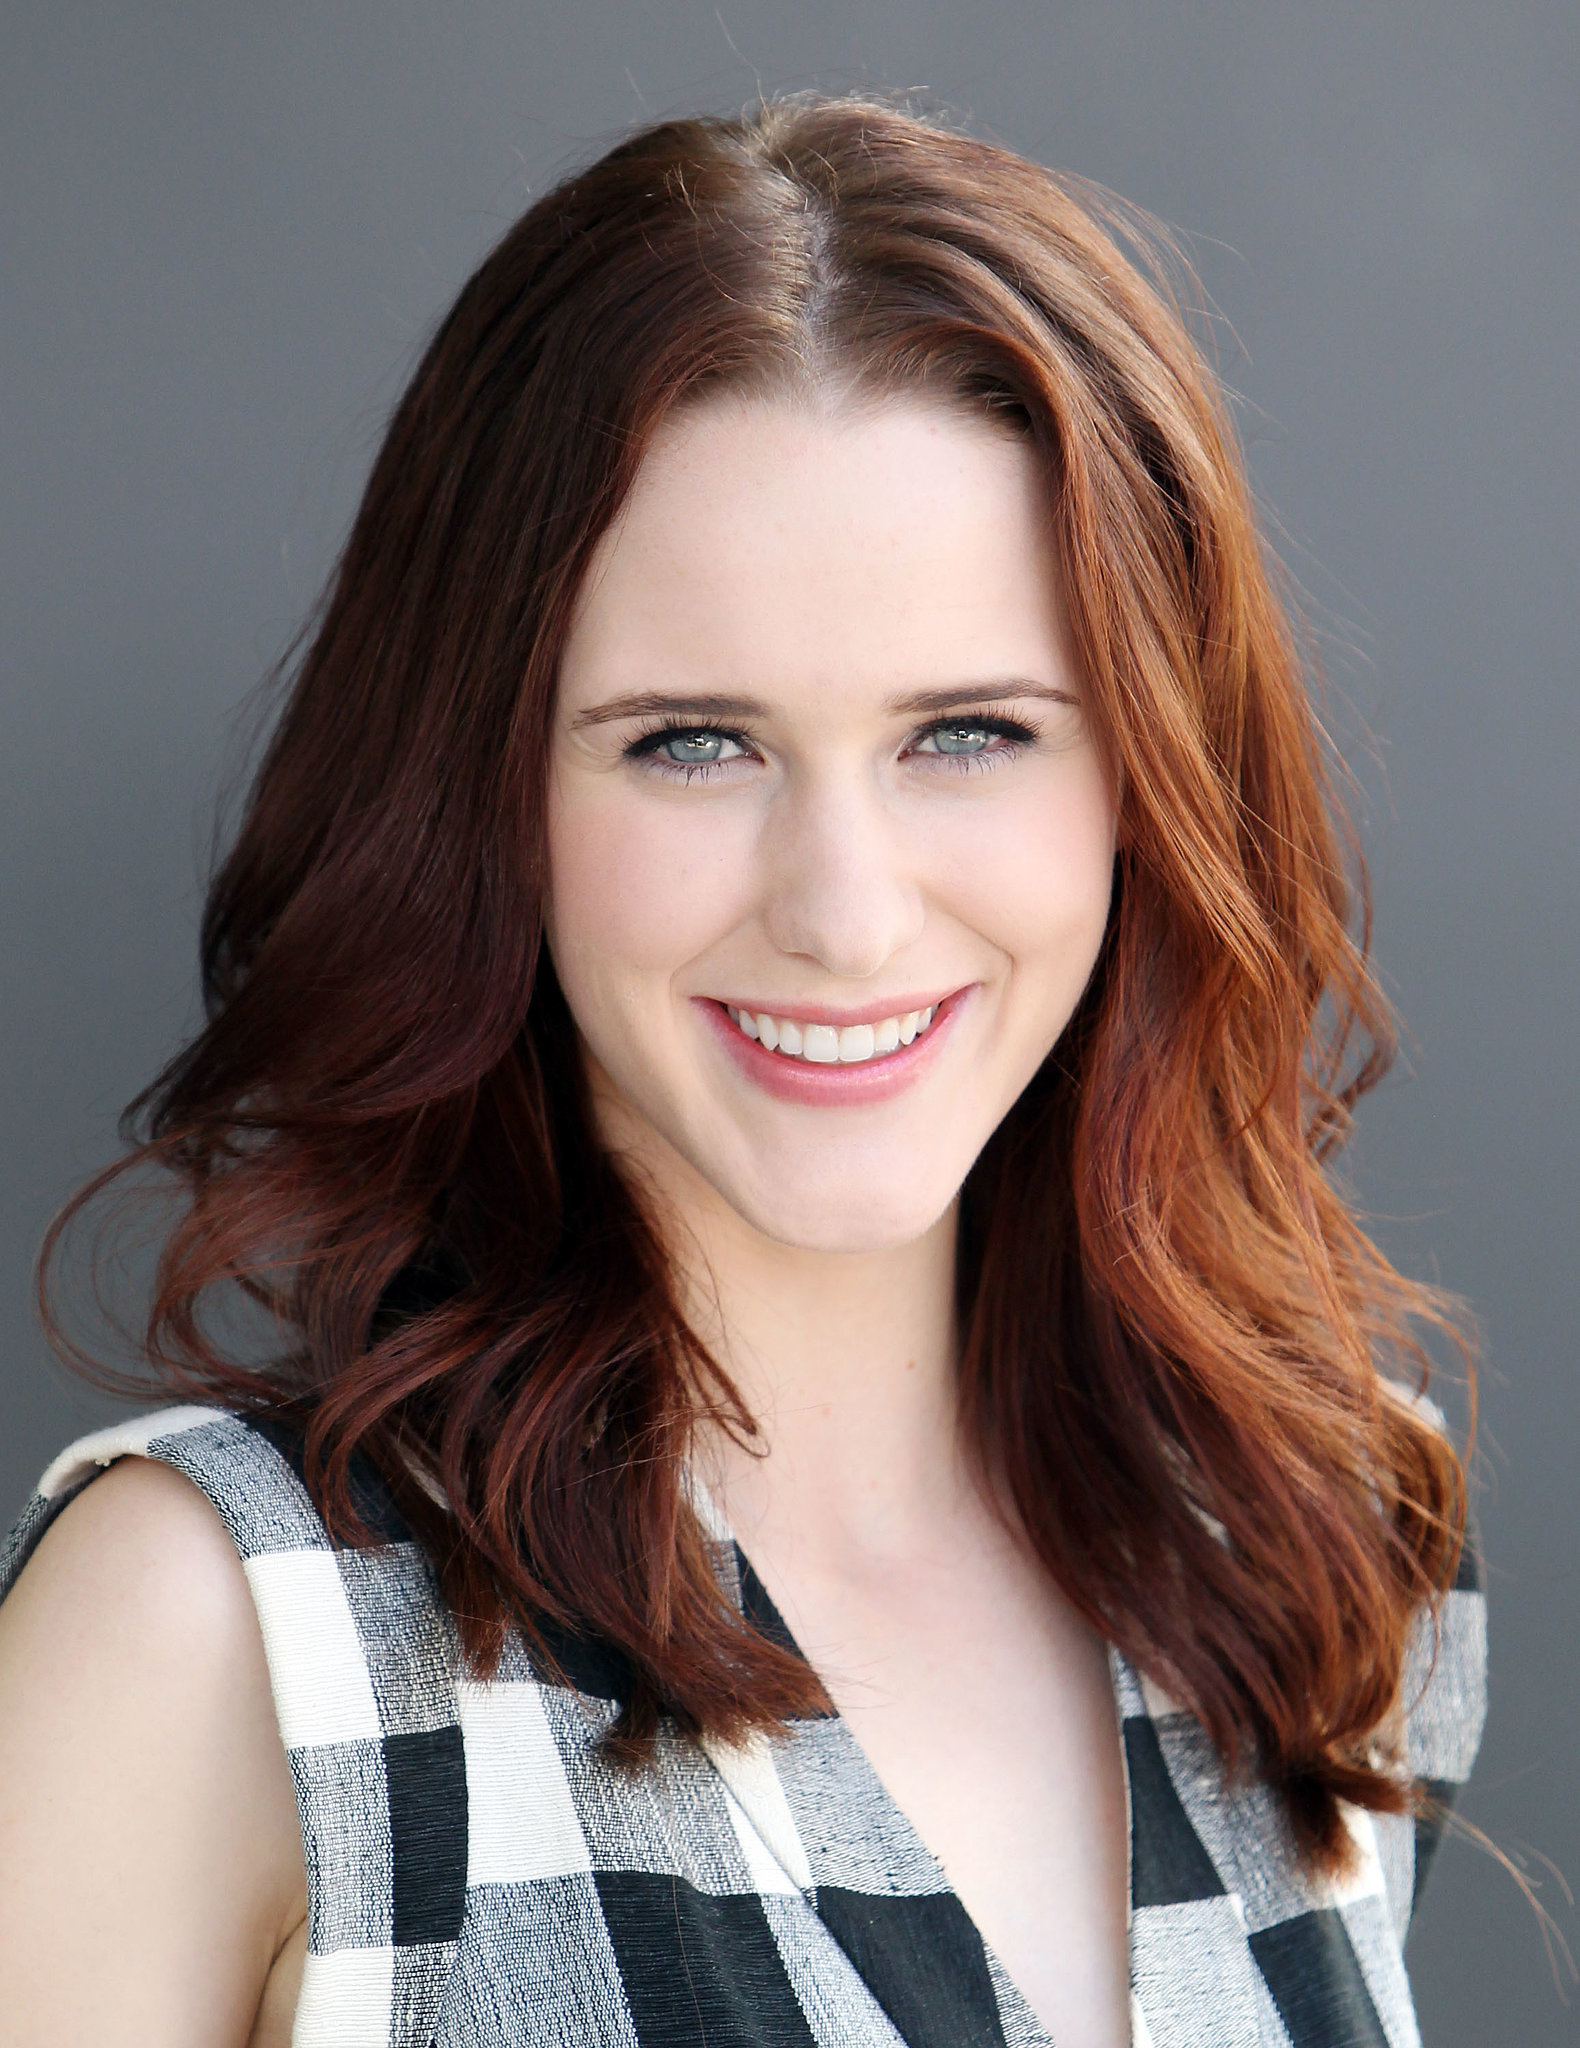 The 28-year old daughter of father Randy Brosnahan and mother Anna Brosnahan, 155 cm tall Rachel Brosnahan in 2018 photo